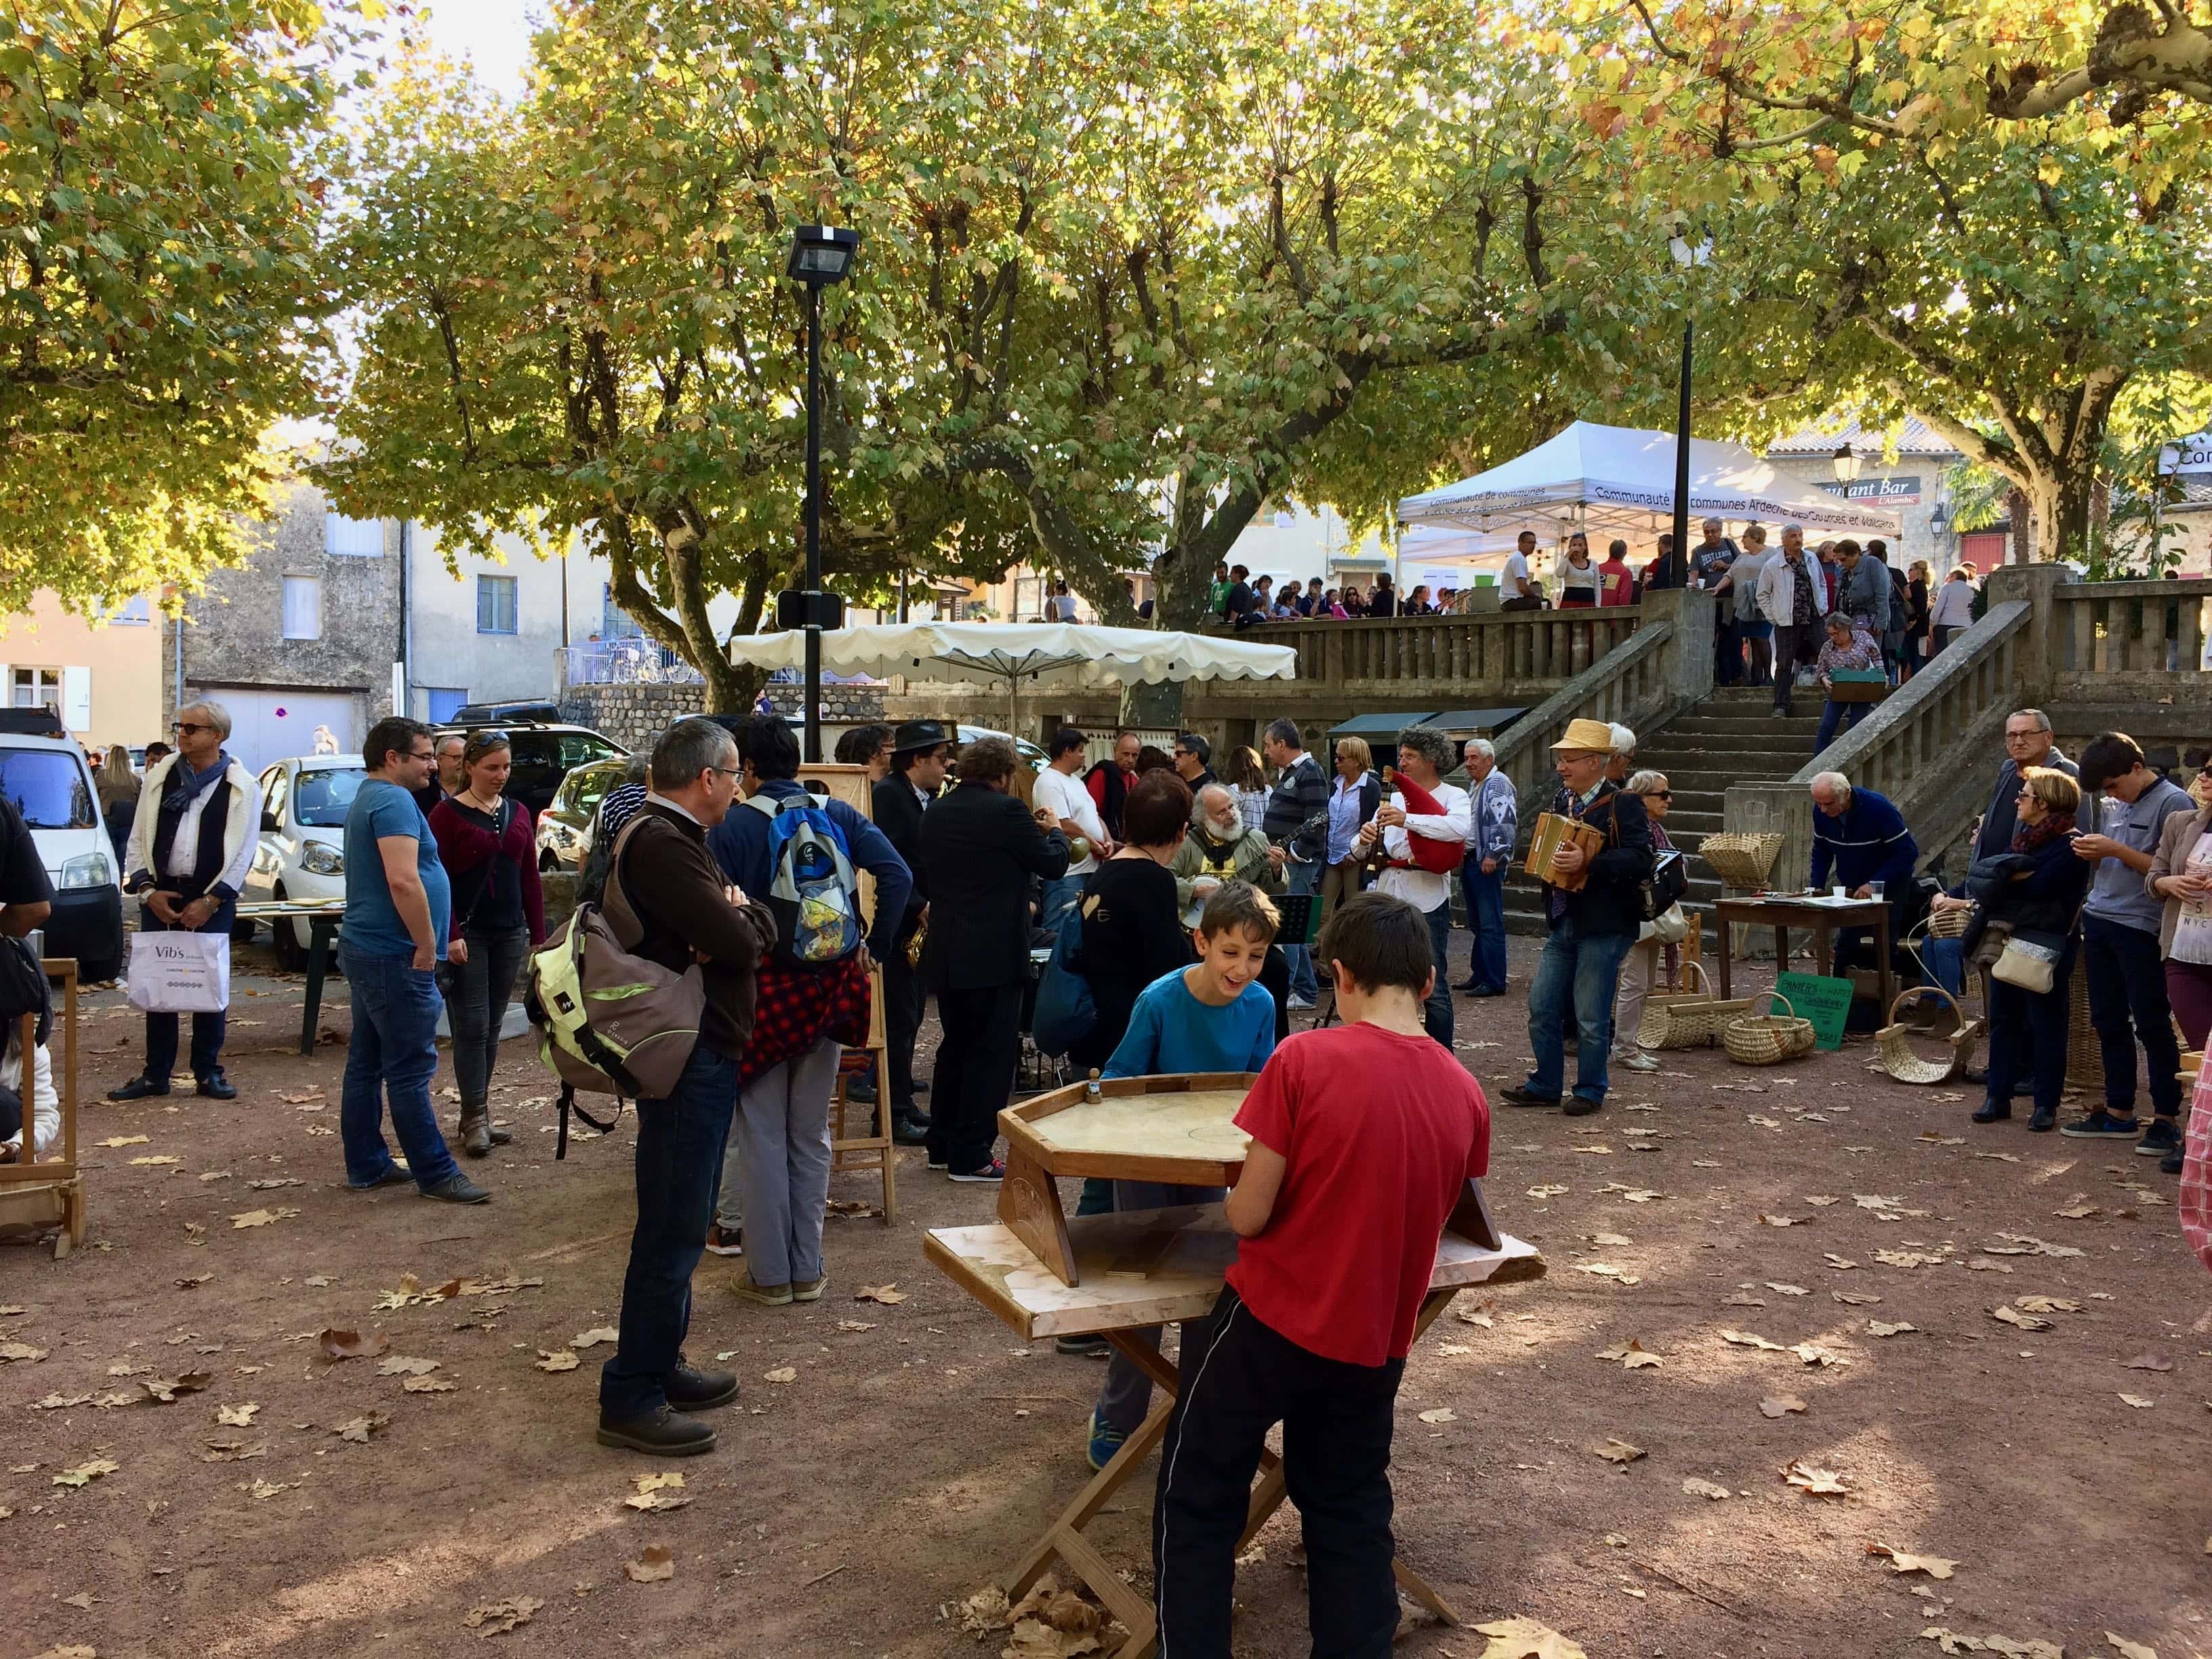 Chestnut market (castagnade) in the Ardèche